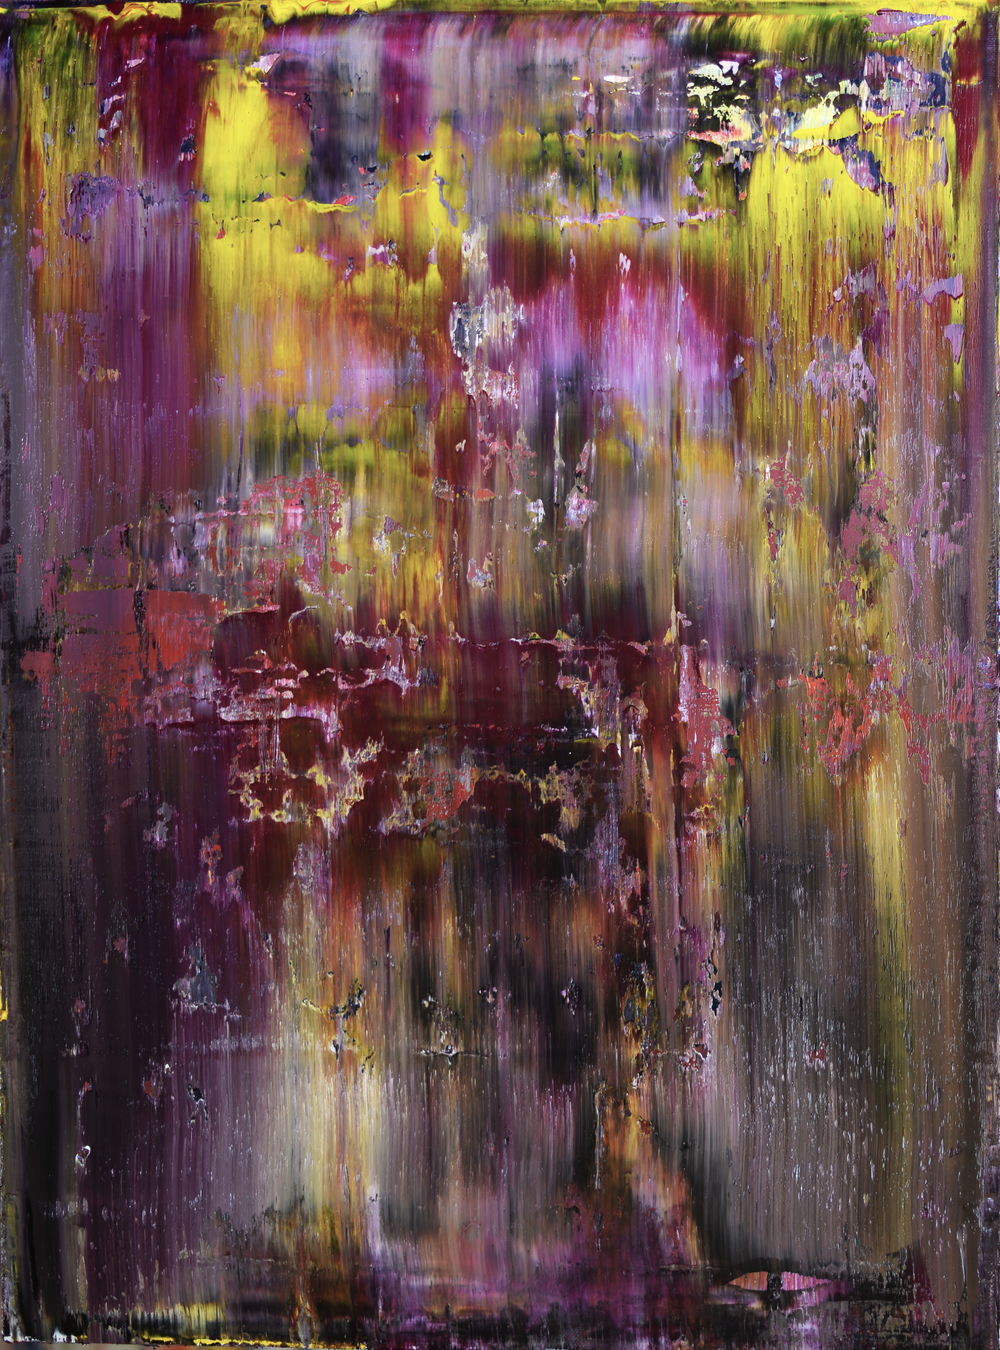 """SEEK"" Is an original, abstract painting created by Los Angeles based artist, Laura Viapiano"